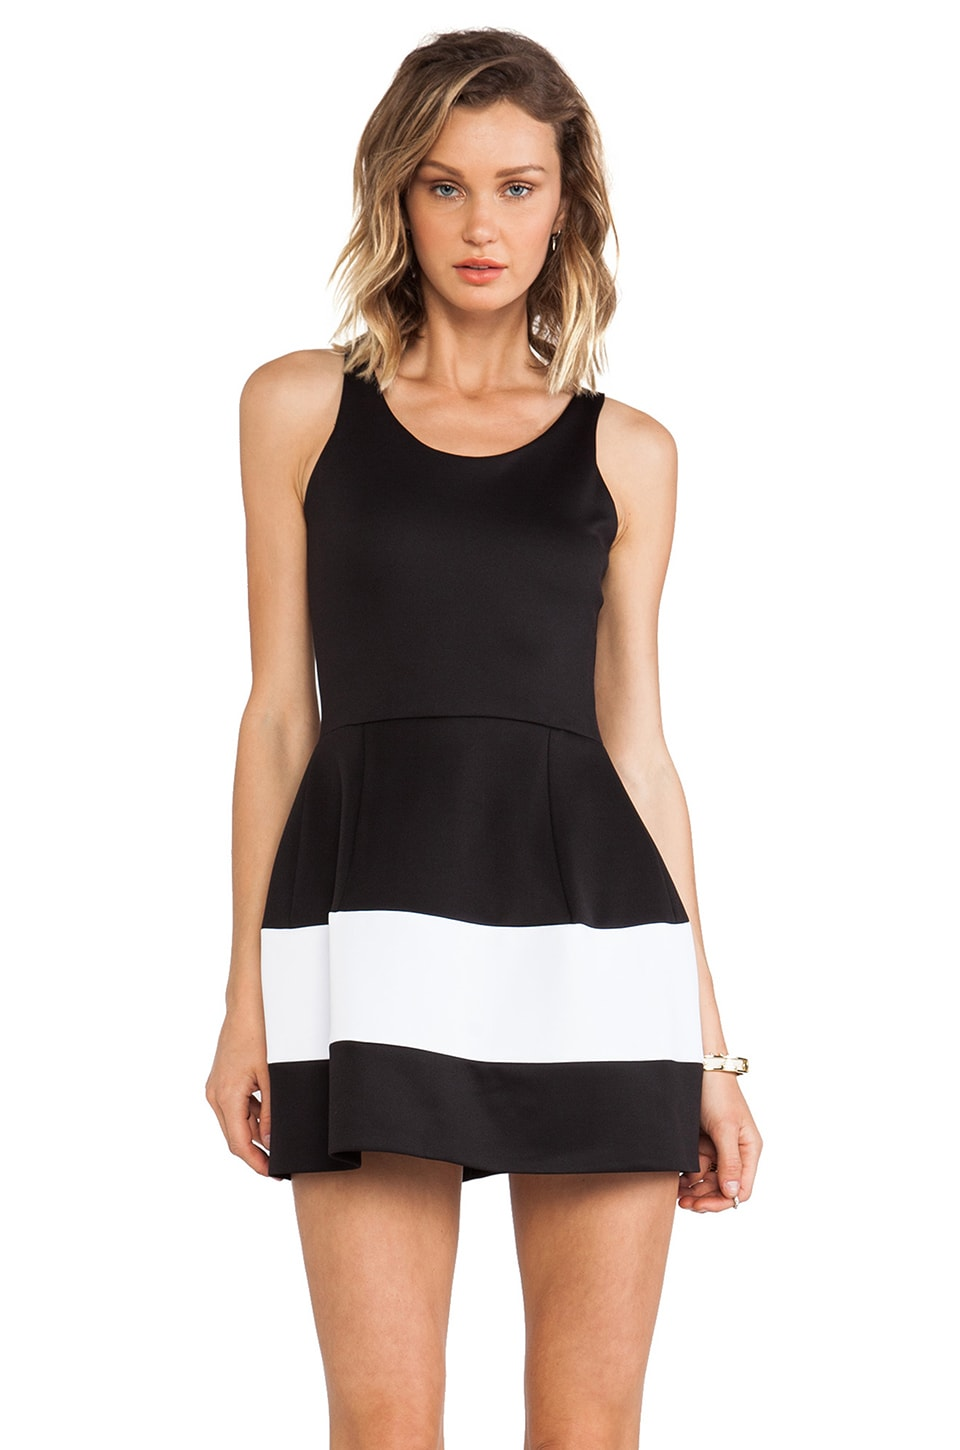 Boulee Marilyn Tank Dress in Black & White